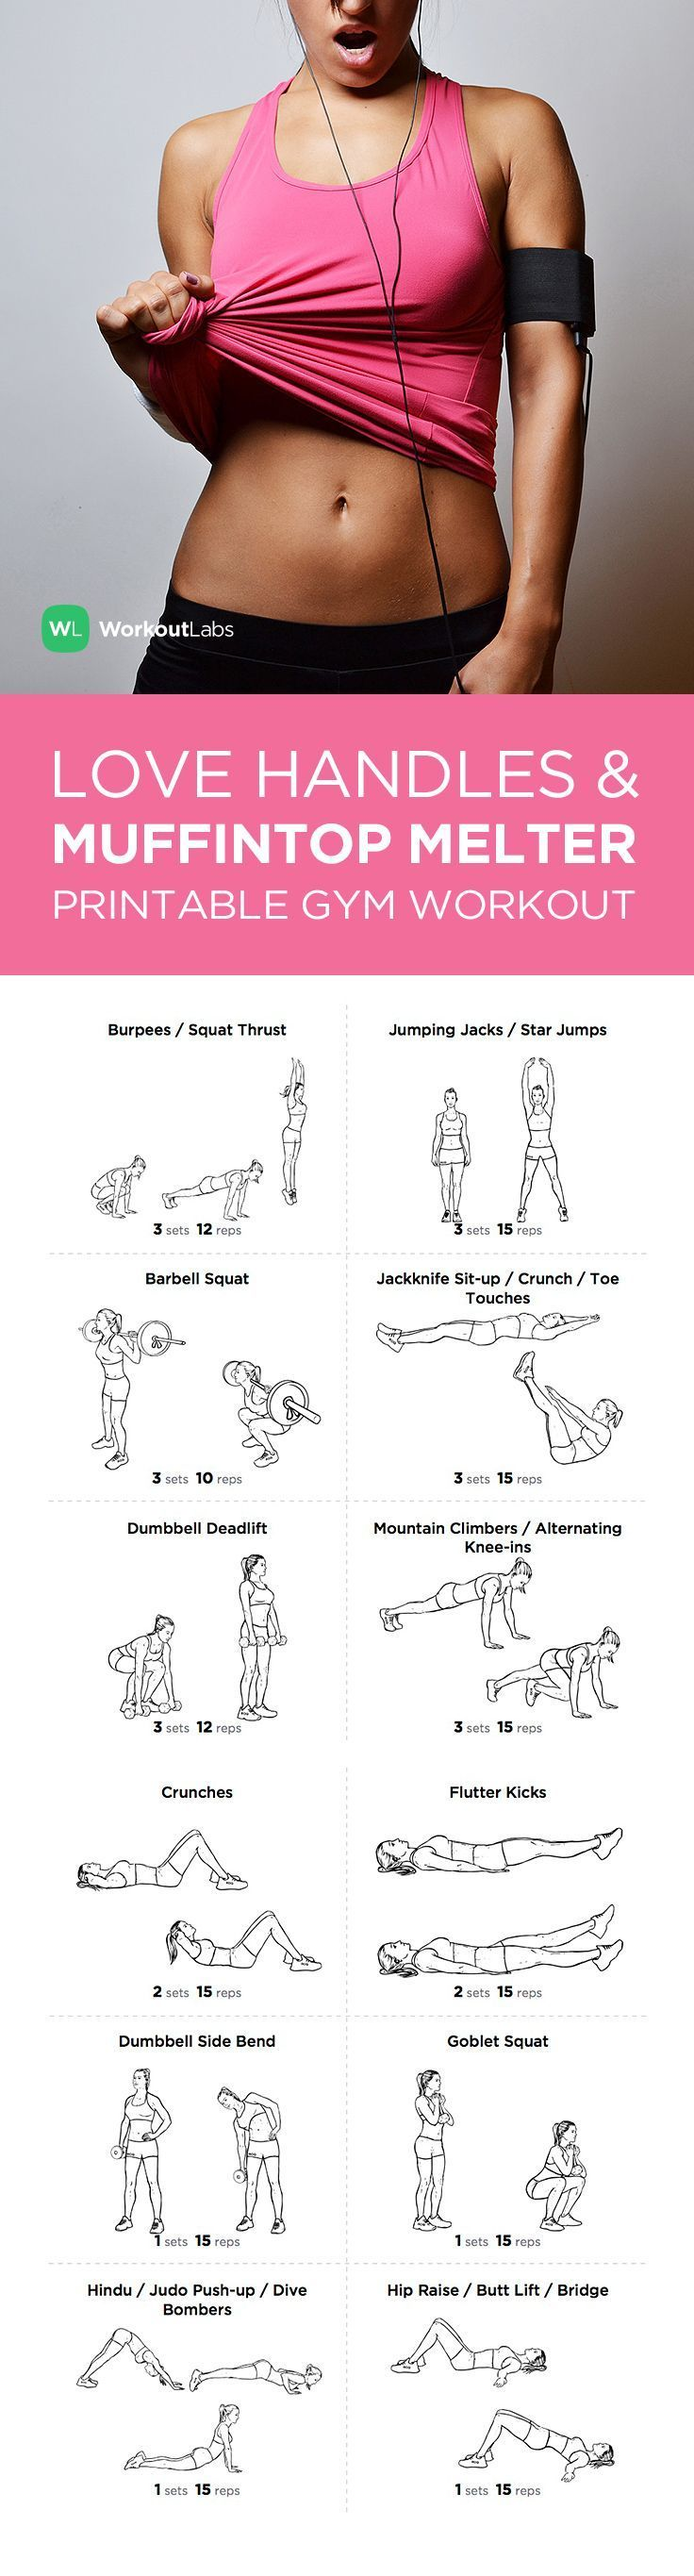 Love handles & muffin top workout printable